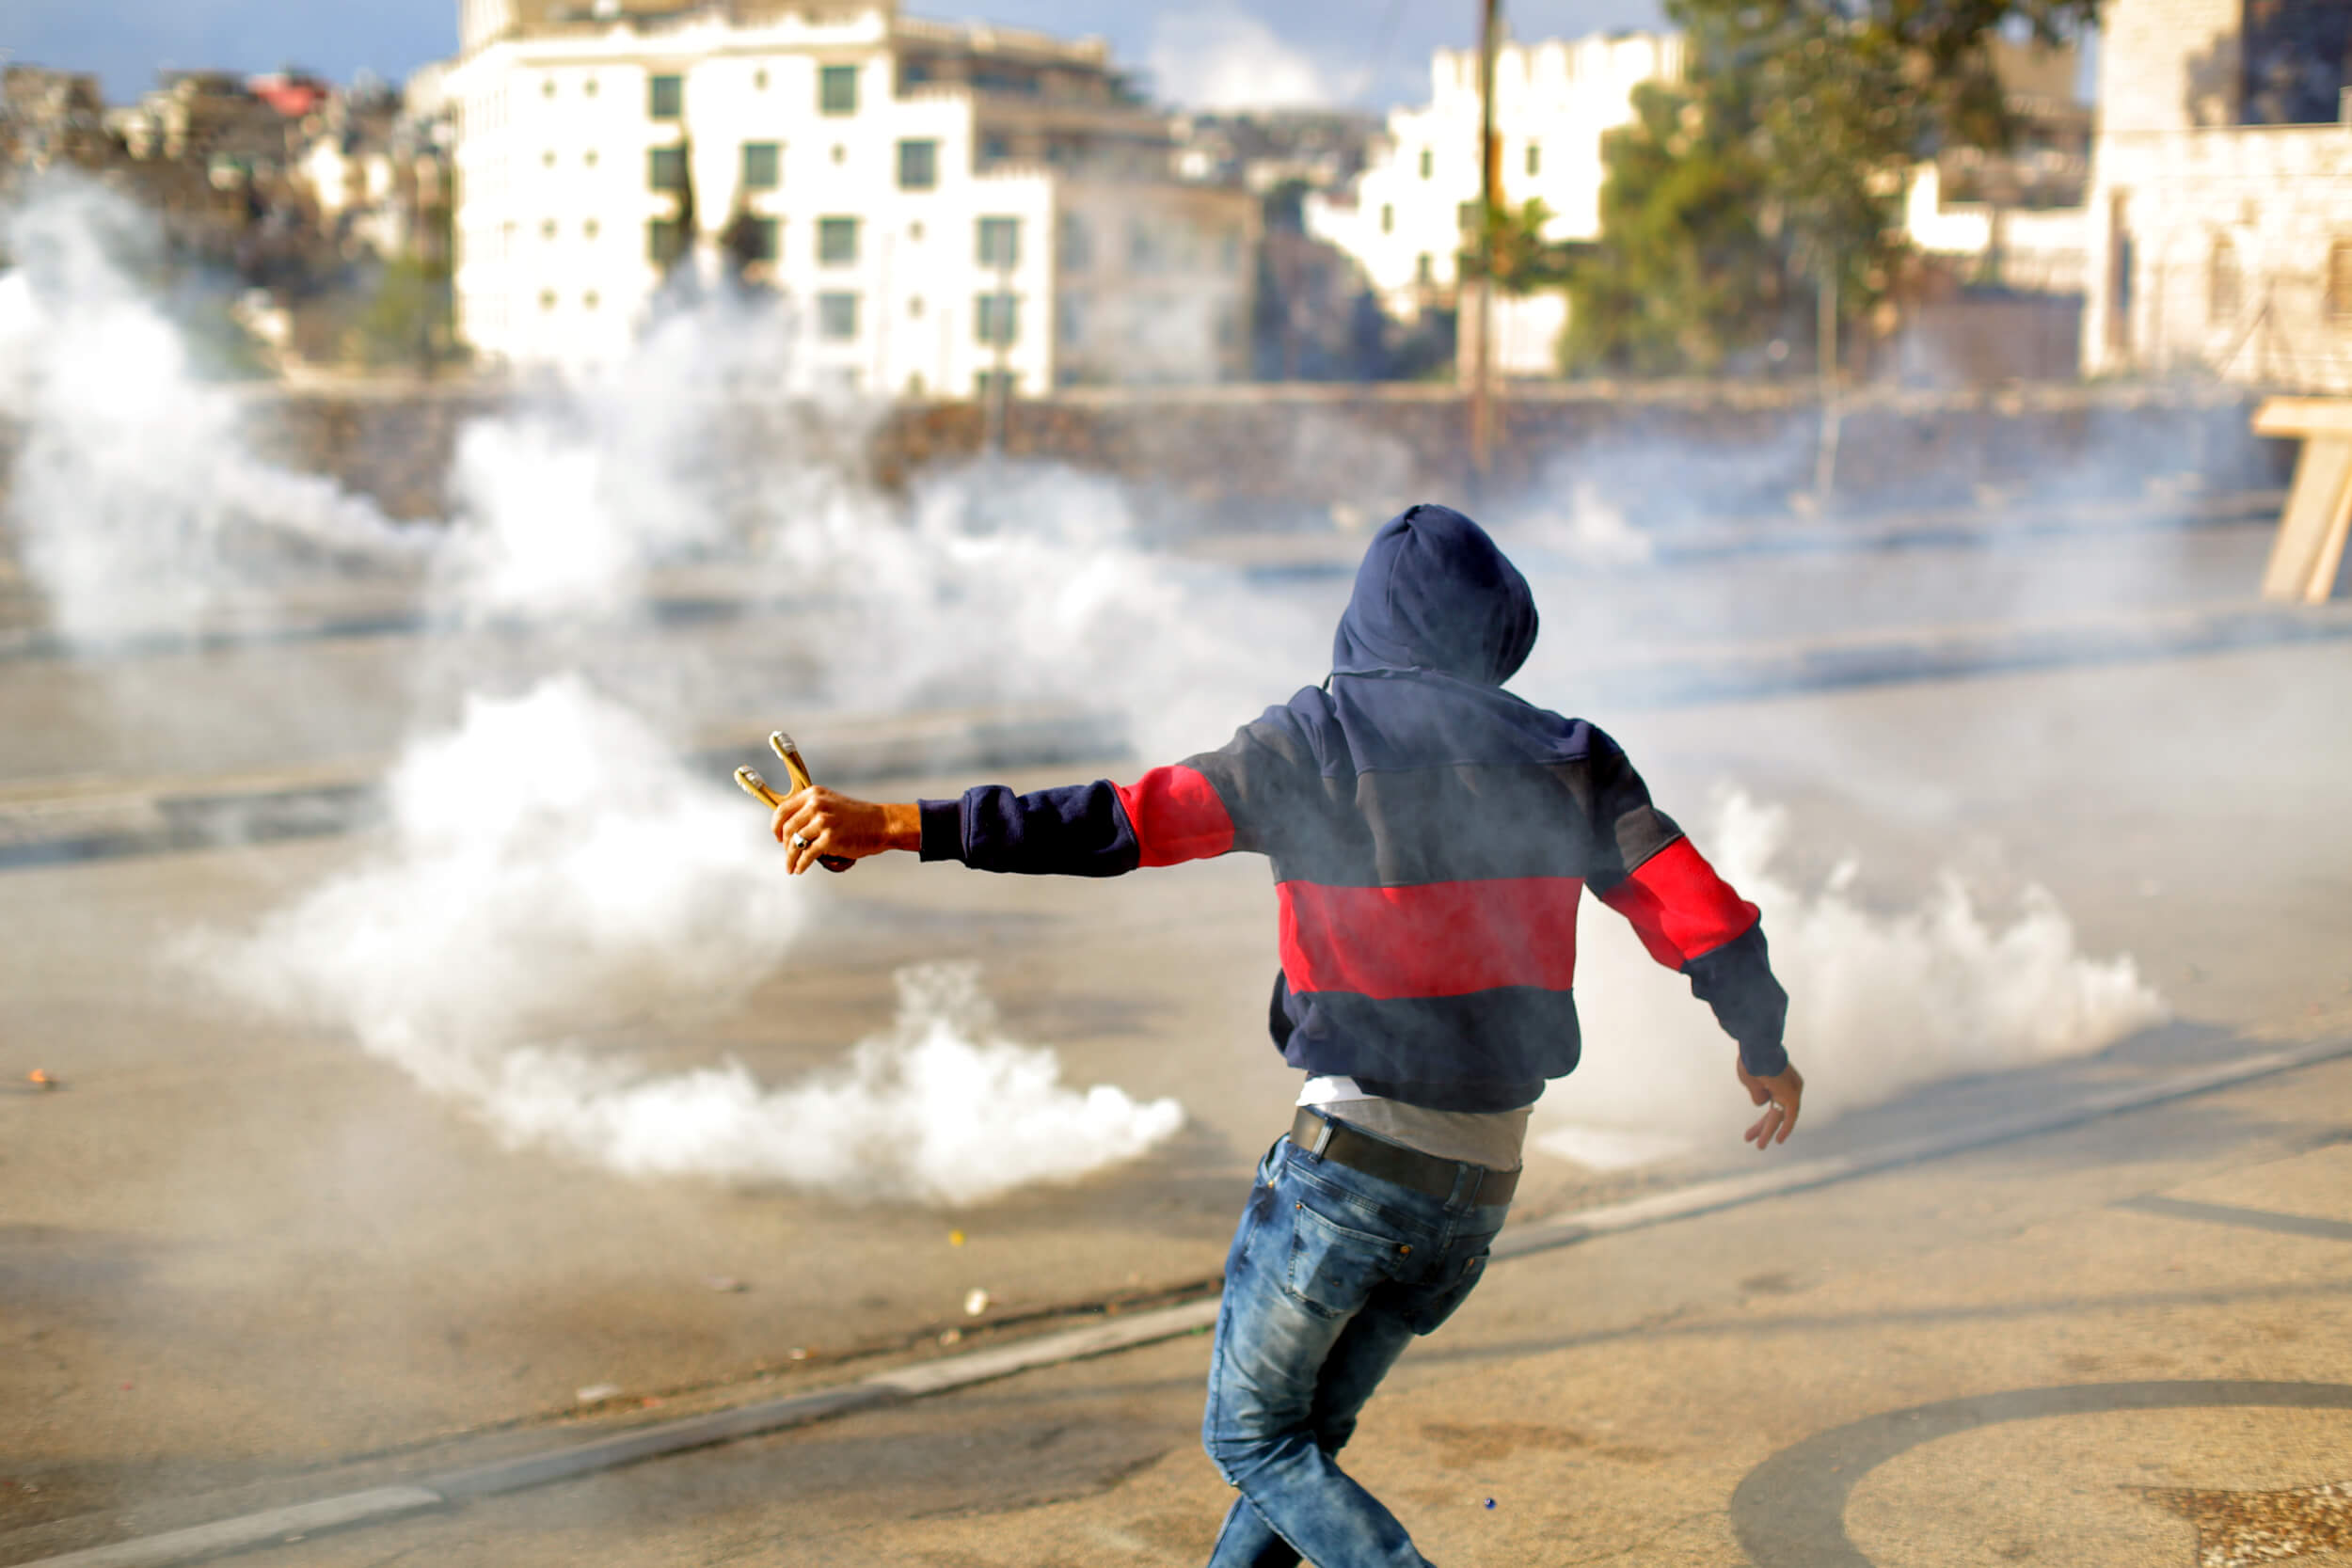 A Young man fires off one last rock from his sling shot before retreating away from the noxious gas. (Photo: Abed al Qaisi)